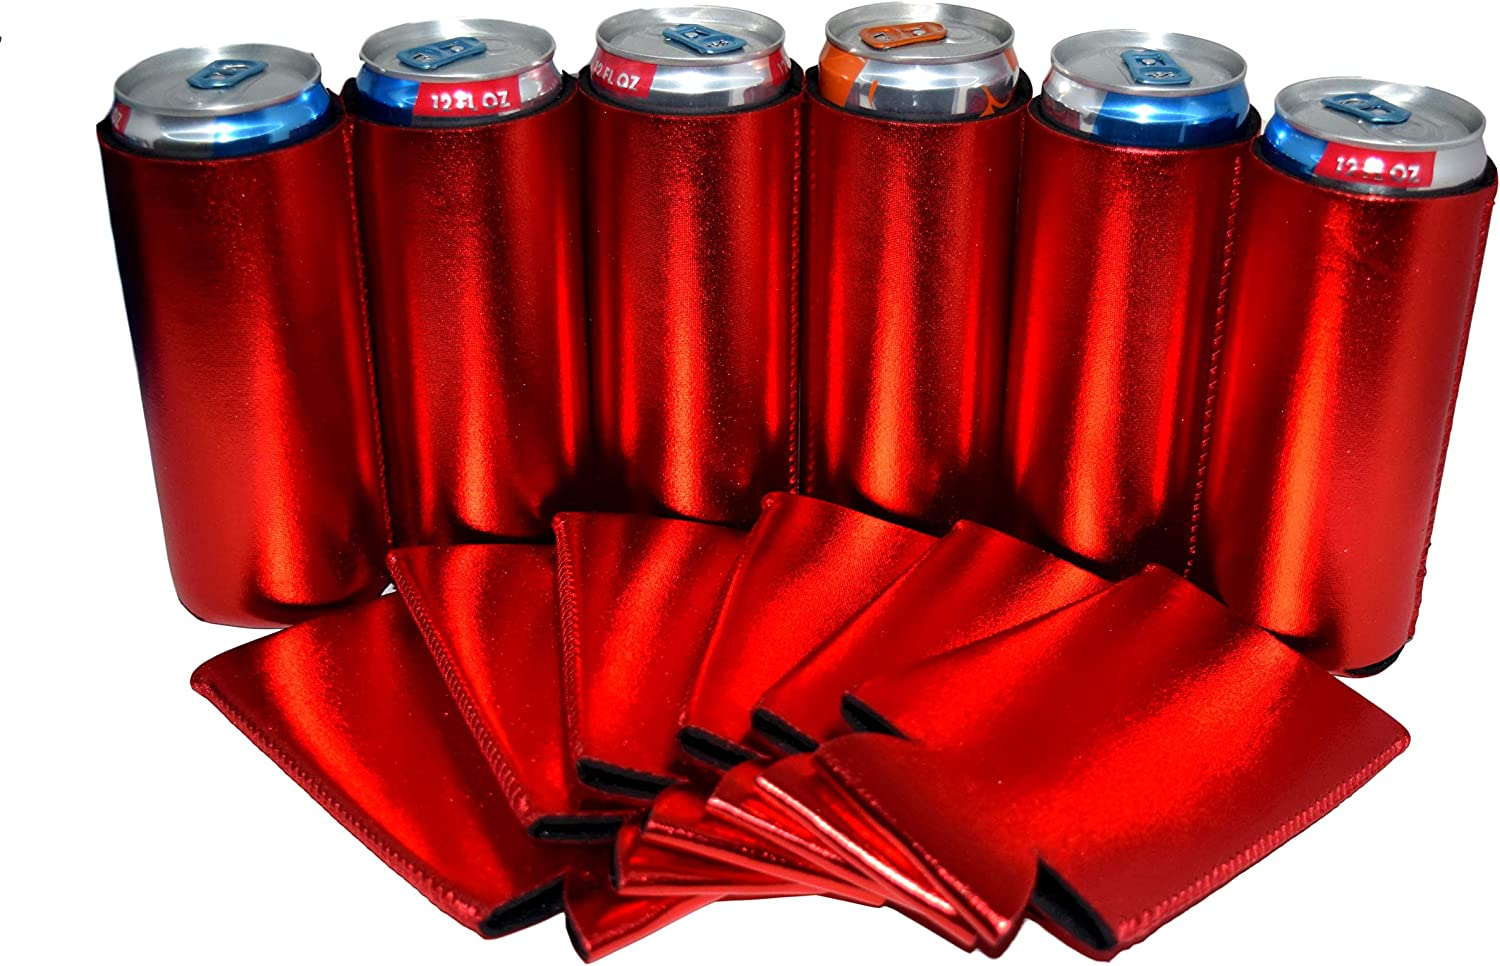 QualityPerfection 6 Slim Can Cooler Sleeve - Beer Blank Skinny 12 oz Neoprene Coolie - Perfect For 12 oz Michelob Ultra,Truly,White Claw - Great Gift For The Holidays (6, Metallic Red)